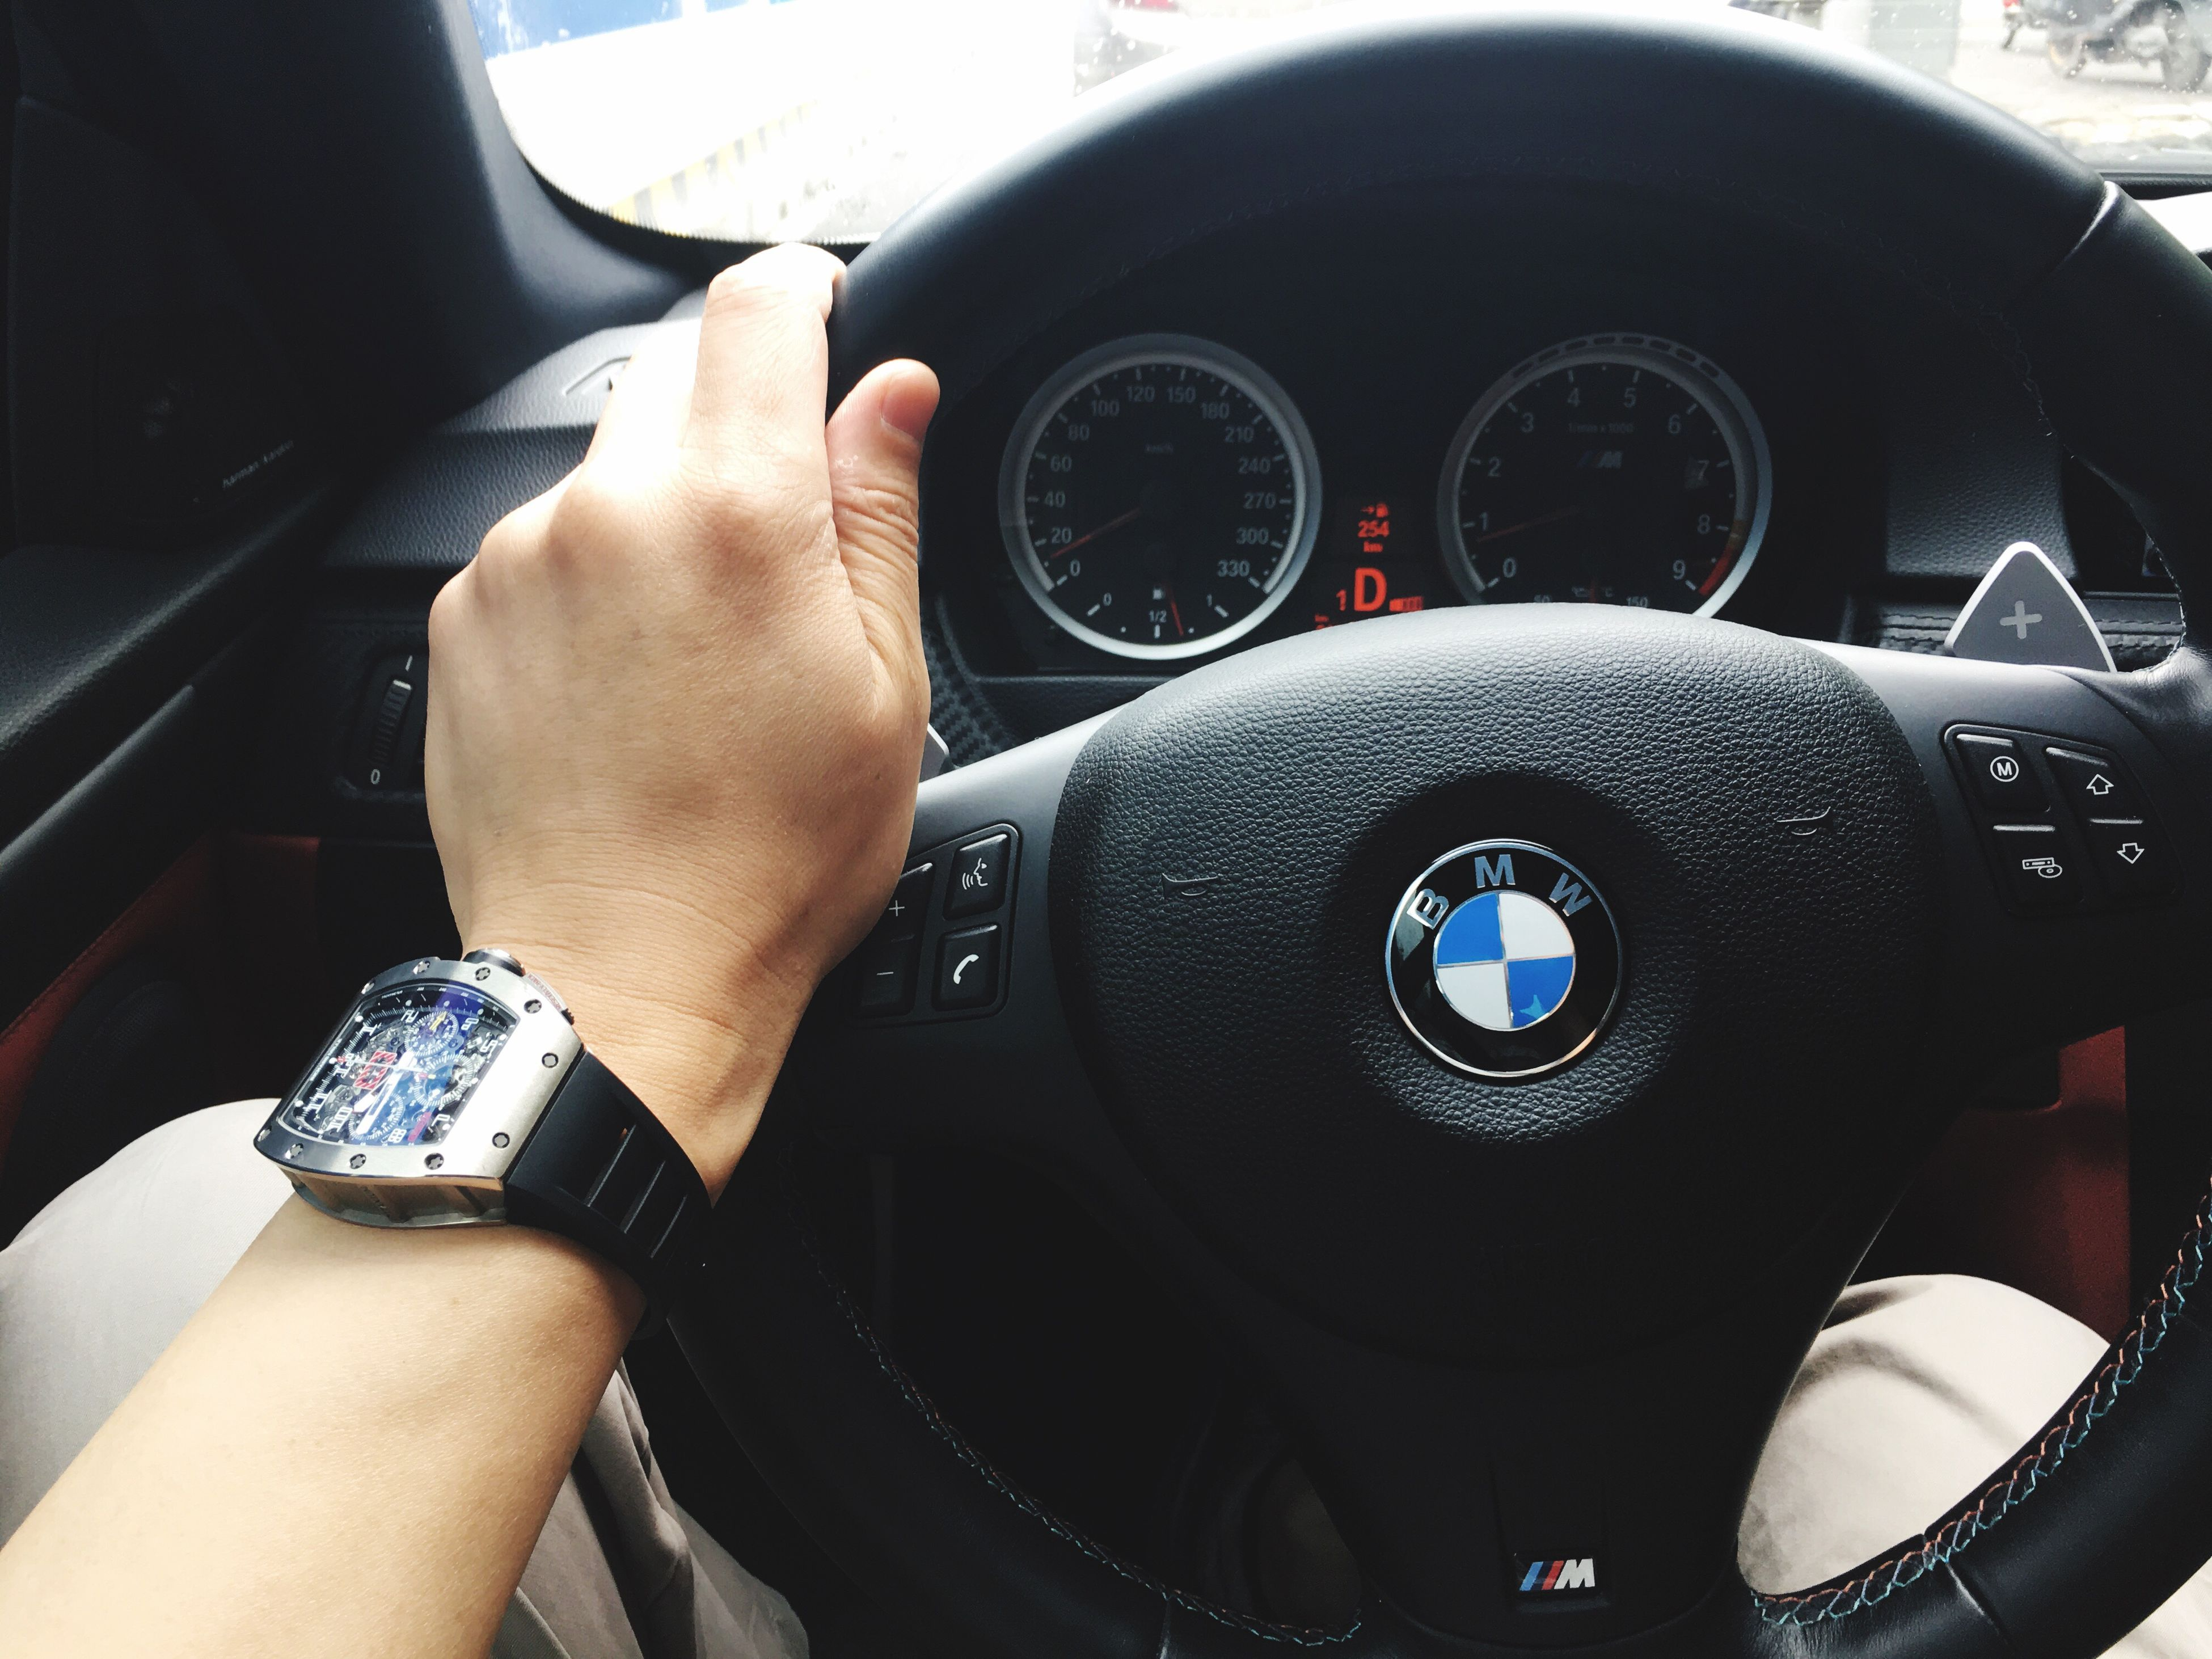 part of, person, transportation, cropped, mode of transport, personal perspective, lifestyles, land vehicle, leisure activity, holding, car, men, low section, technology, travel, vehicle interior